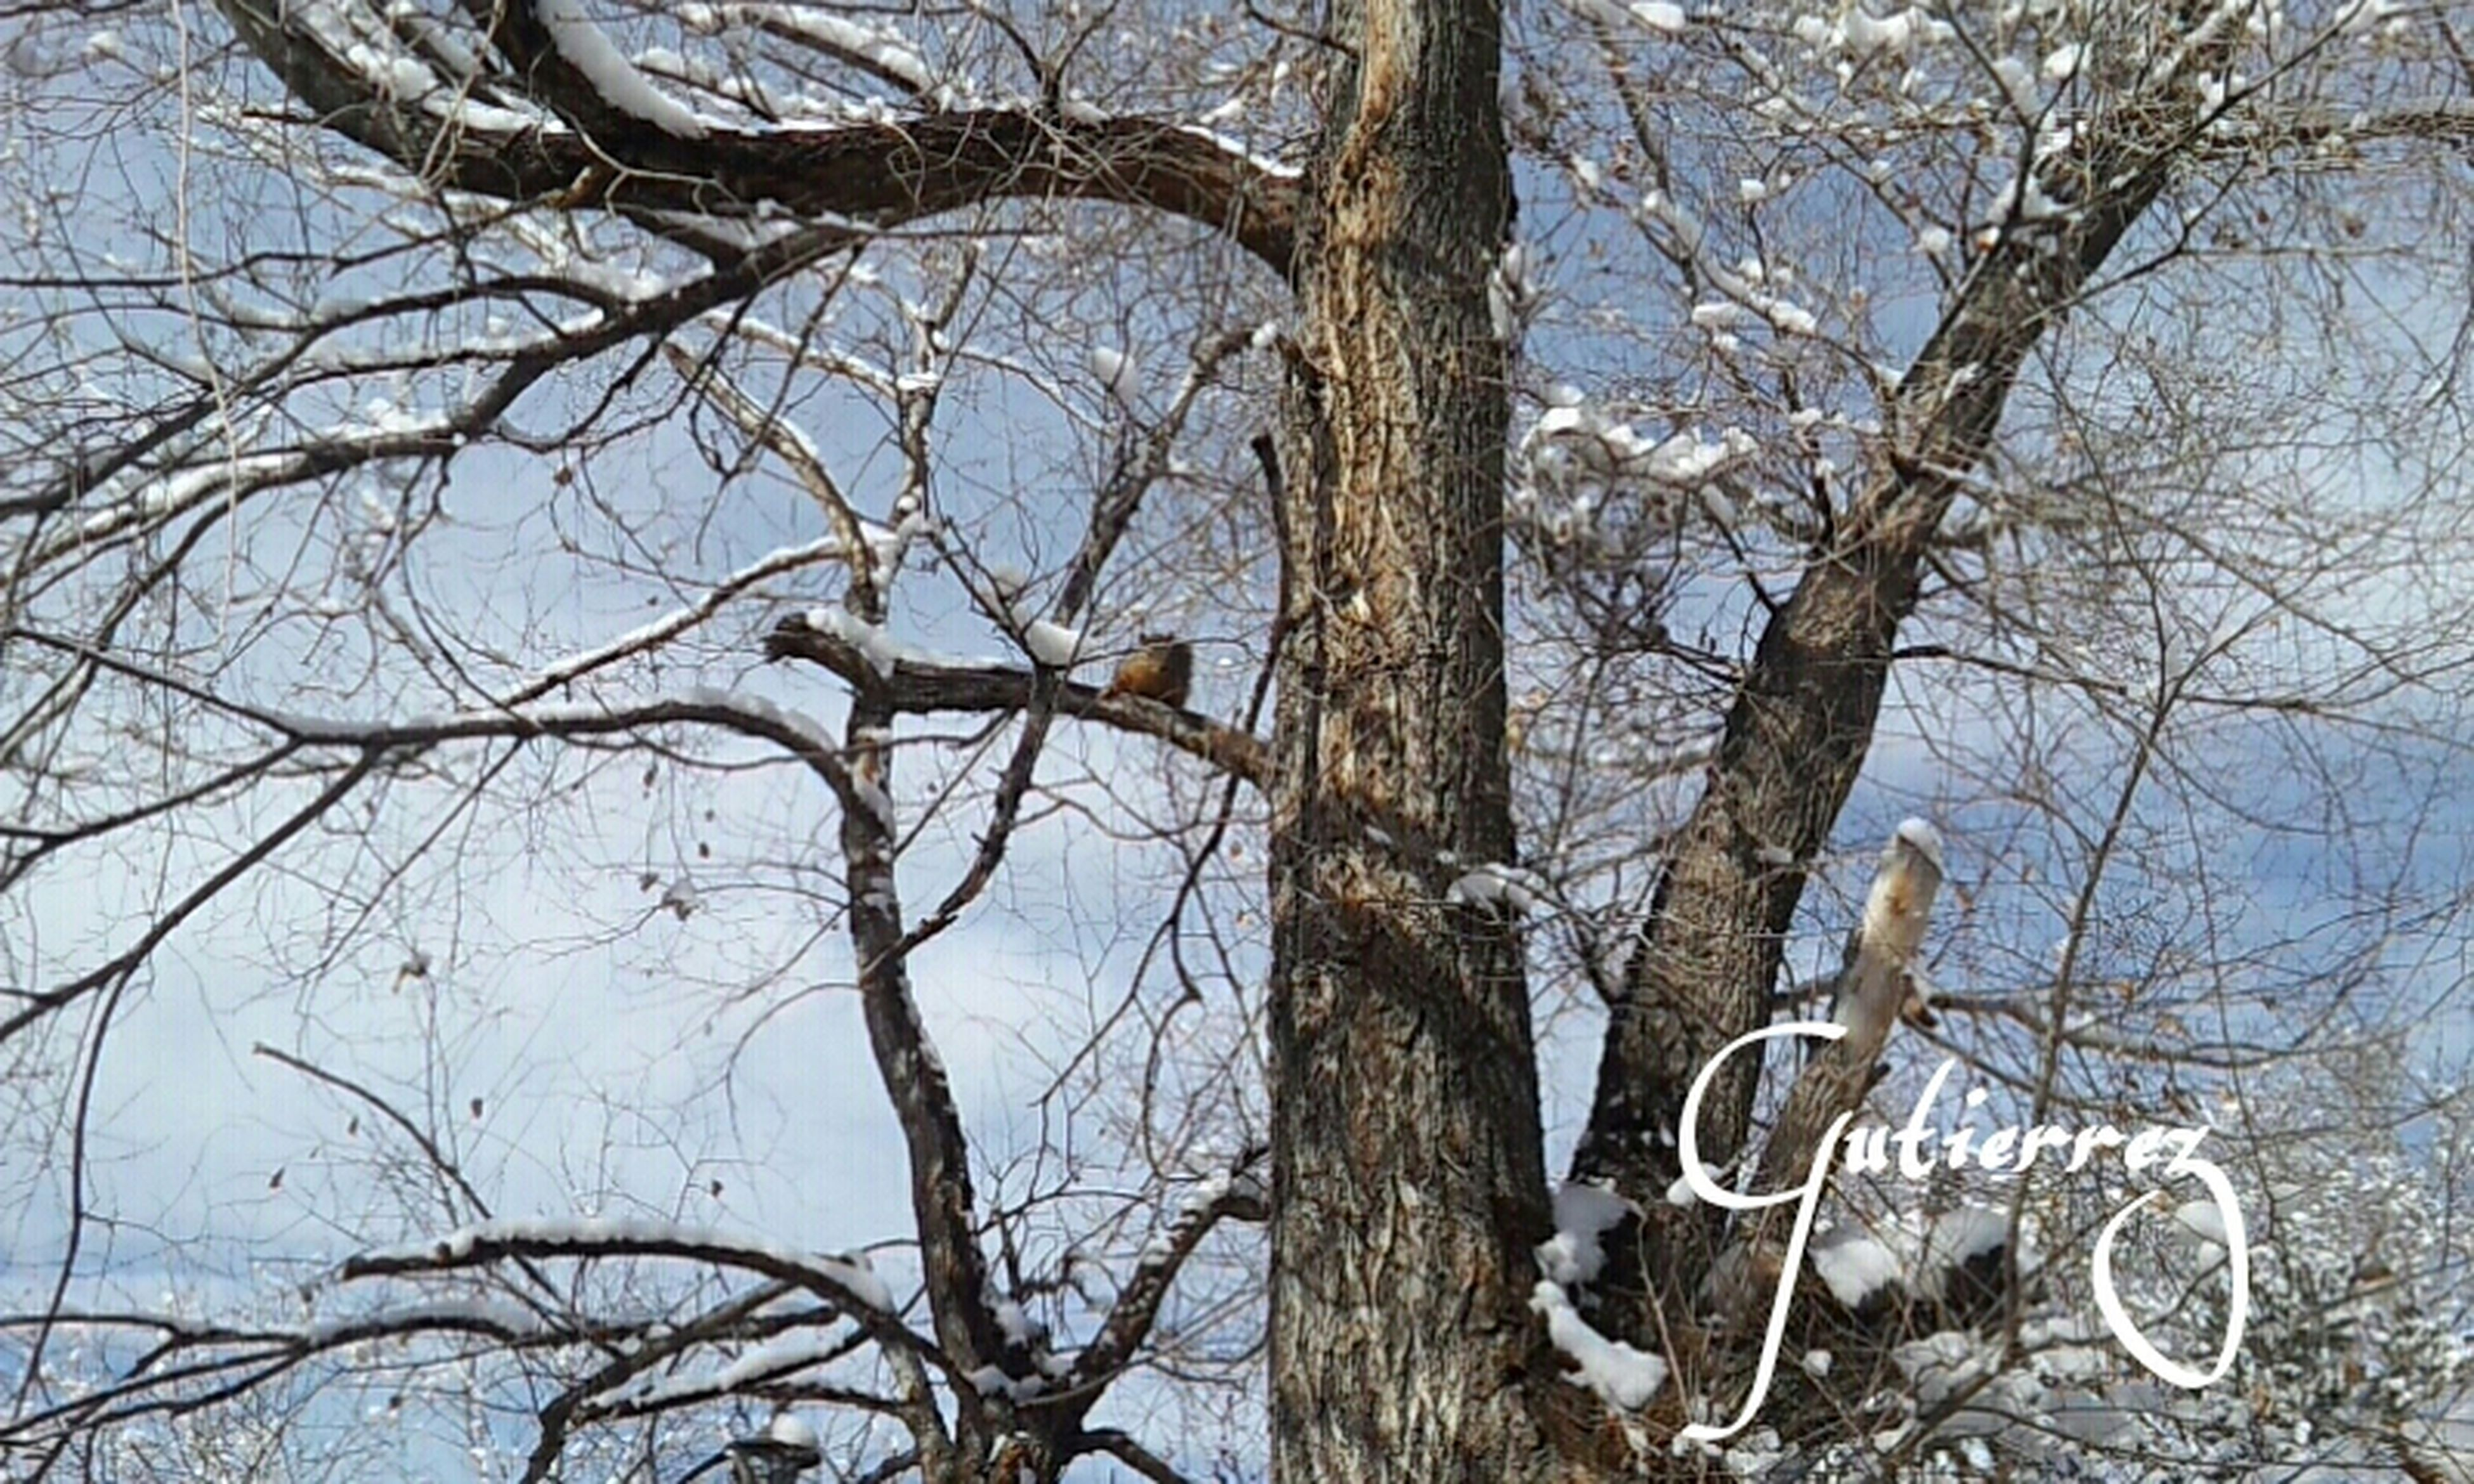 bare tree, branch, tree, tree trunk, low angle view, nature, winter, tranquility, sky, cold temperature, snow, day, outdoors, no people, beauty in nature, dead plant, wildlife, animal themes, bird, tranquil scene